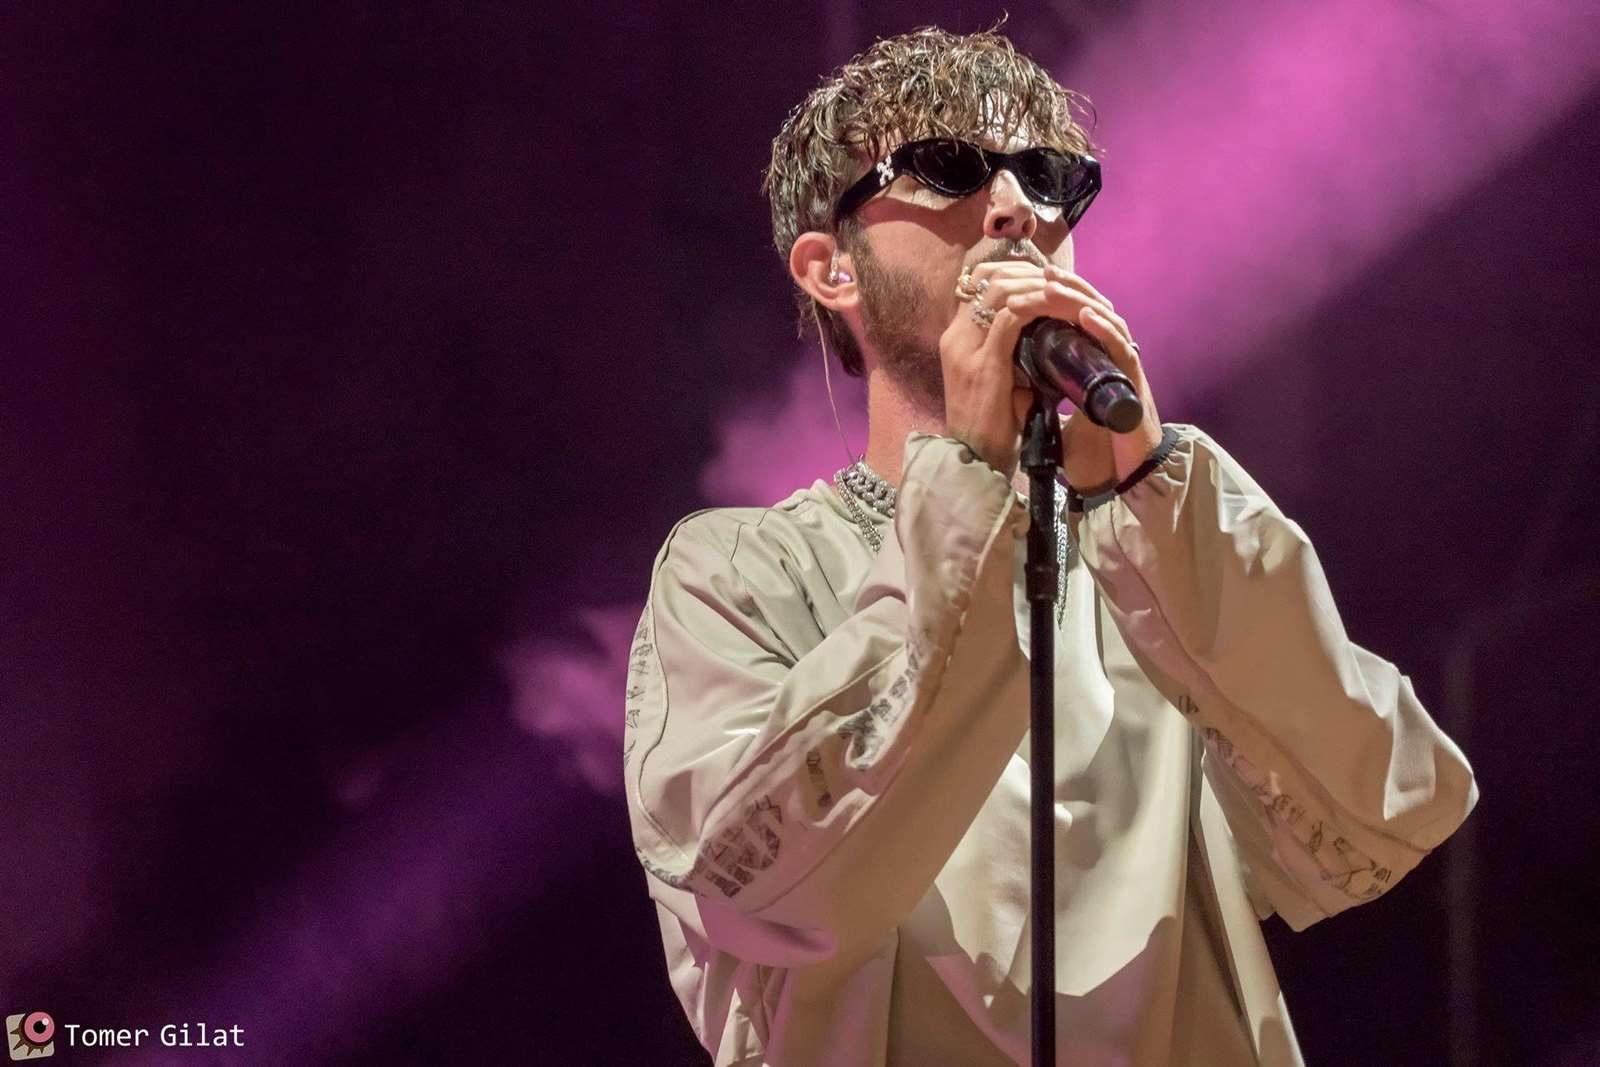 Oscar and the wolf live in Israel;,2018